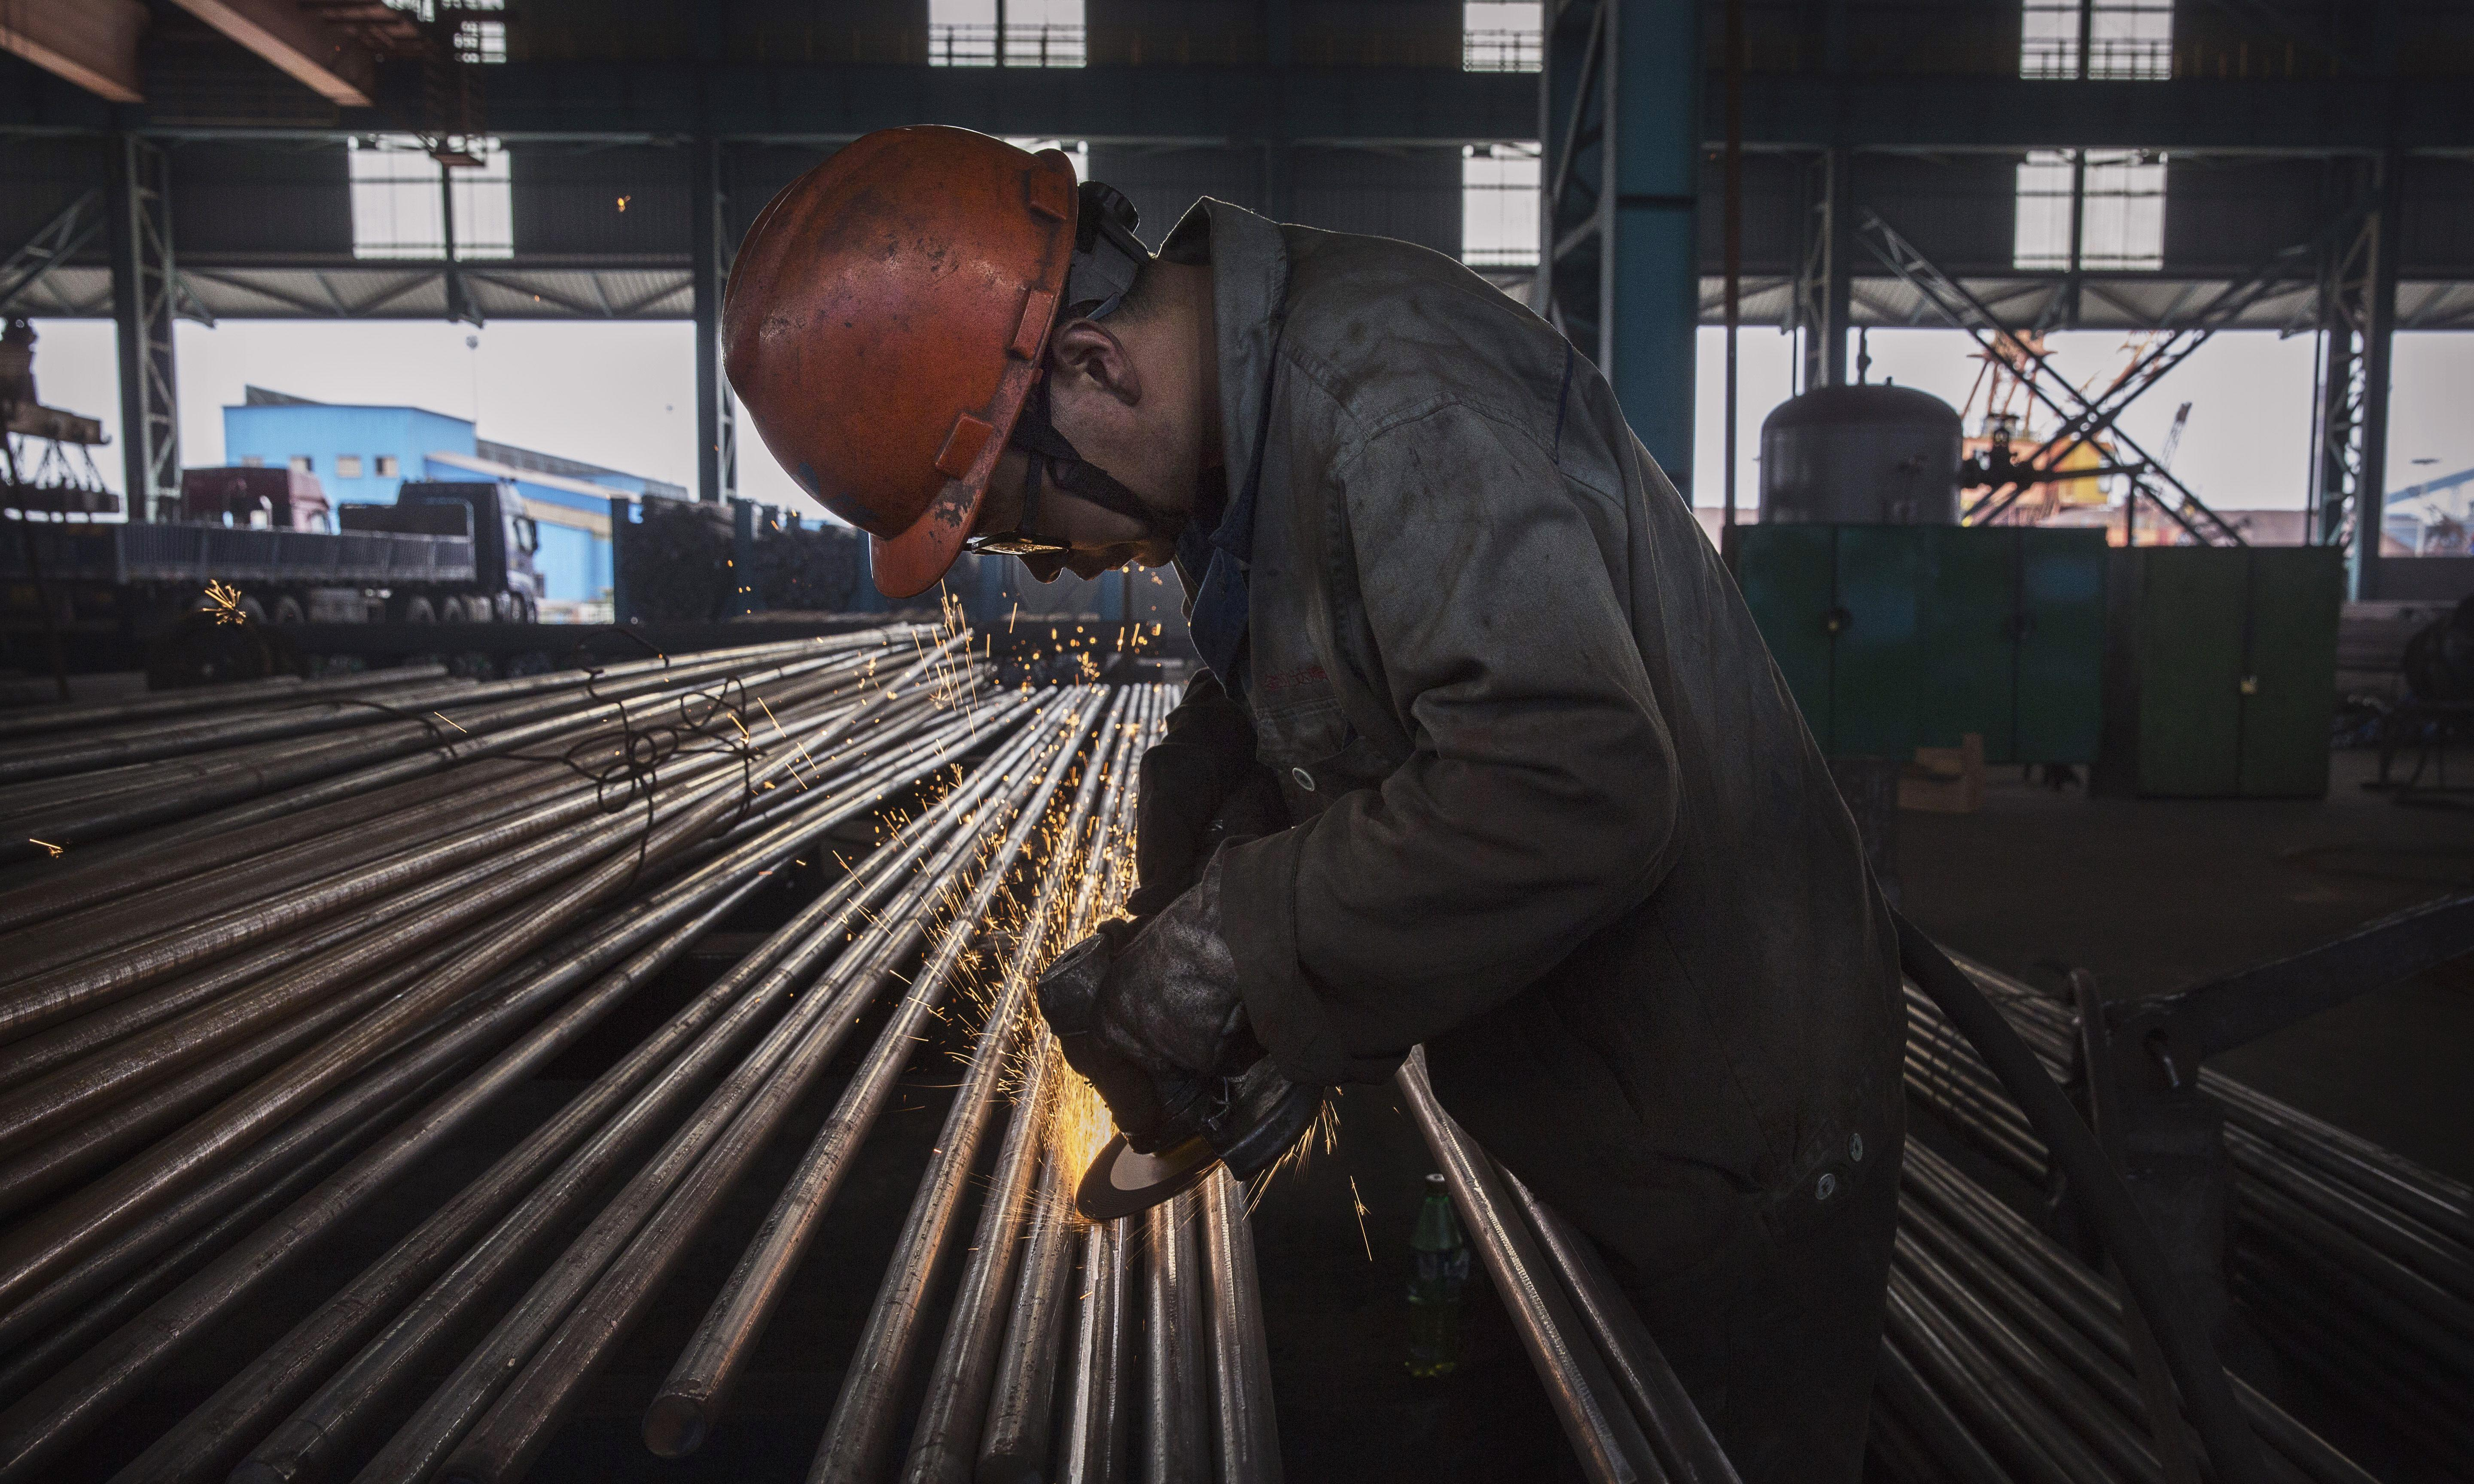 China's industrial growth slumps to weakest rate in over 17 years